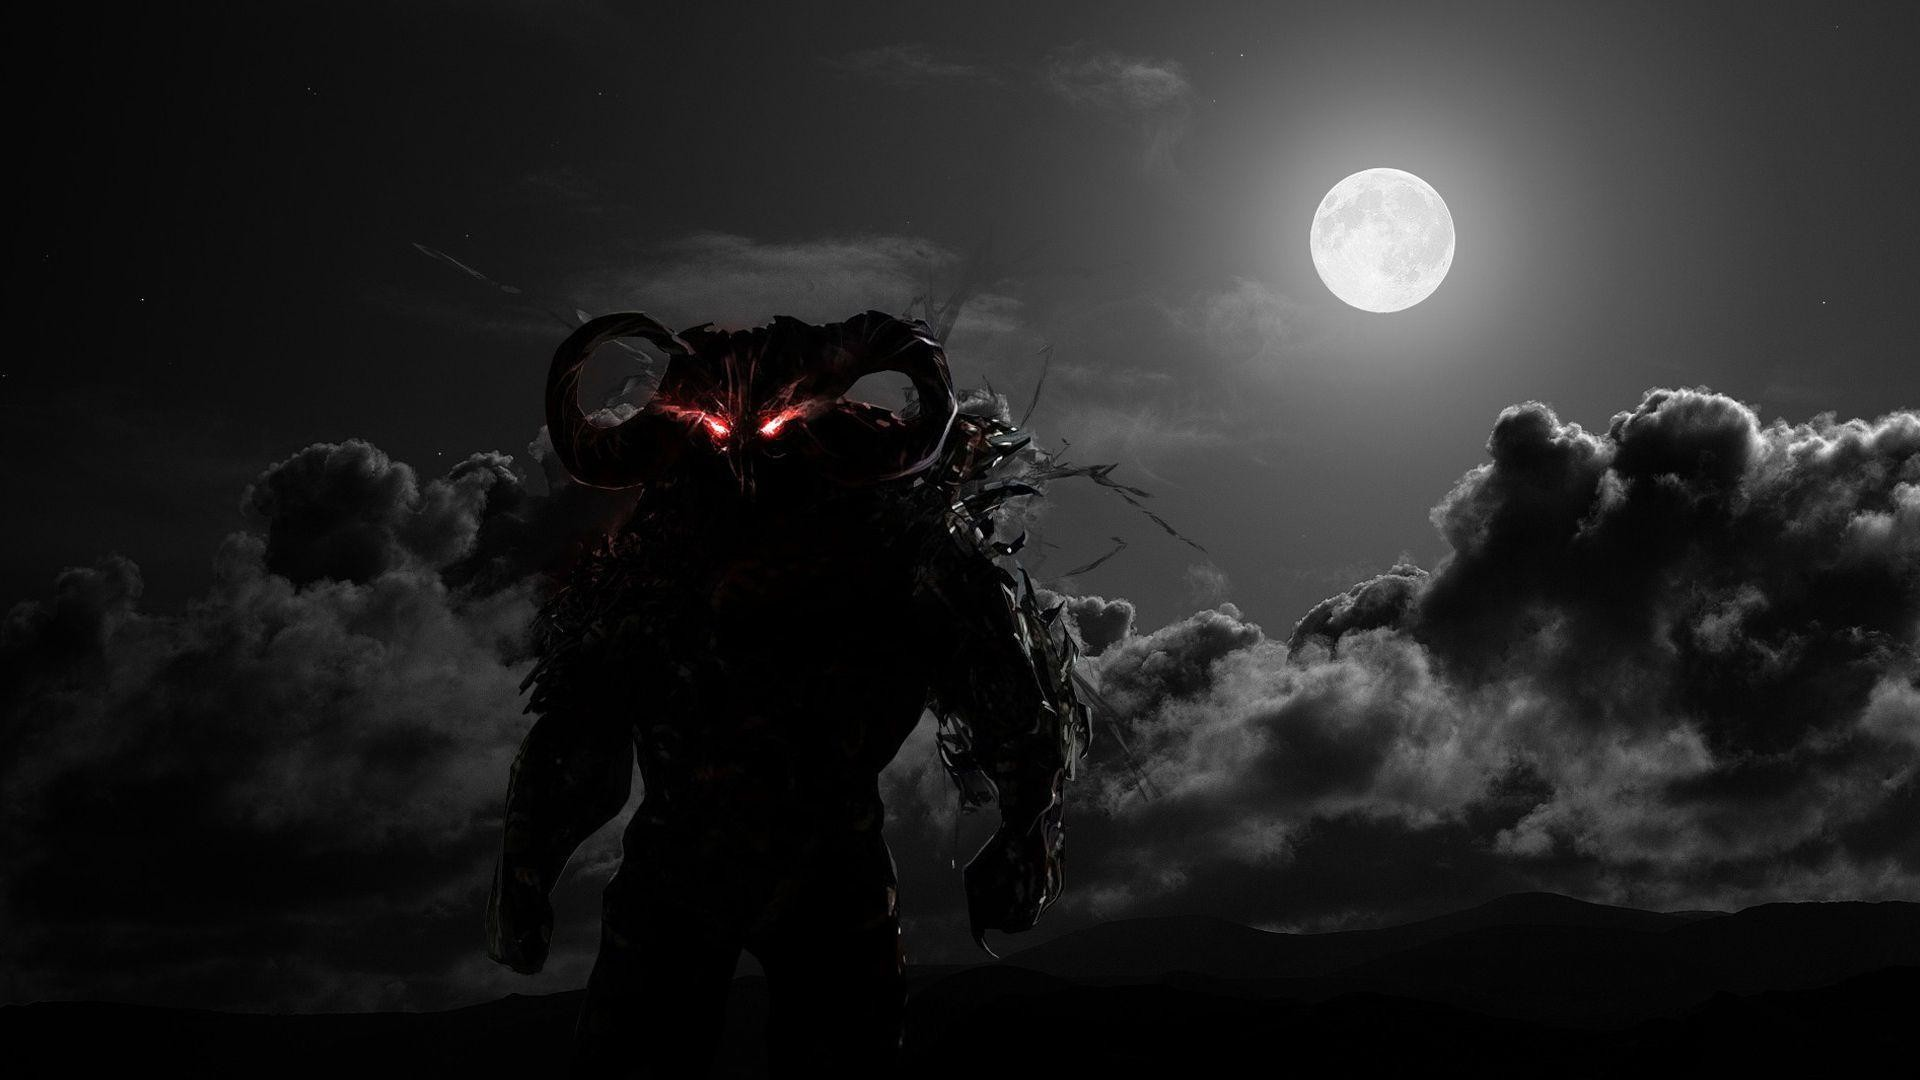 Zombie wallpapers hd impremedia 1920x1080 wallpapers for zombie wallpaper hd voltagebd Gallery